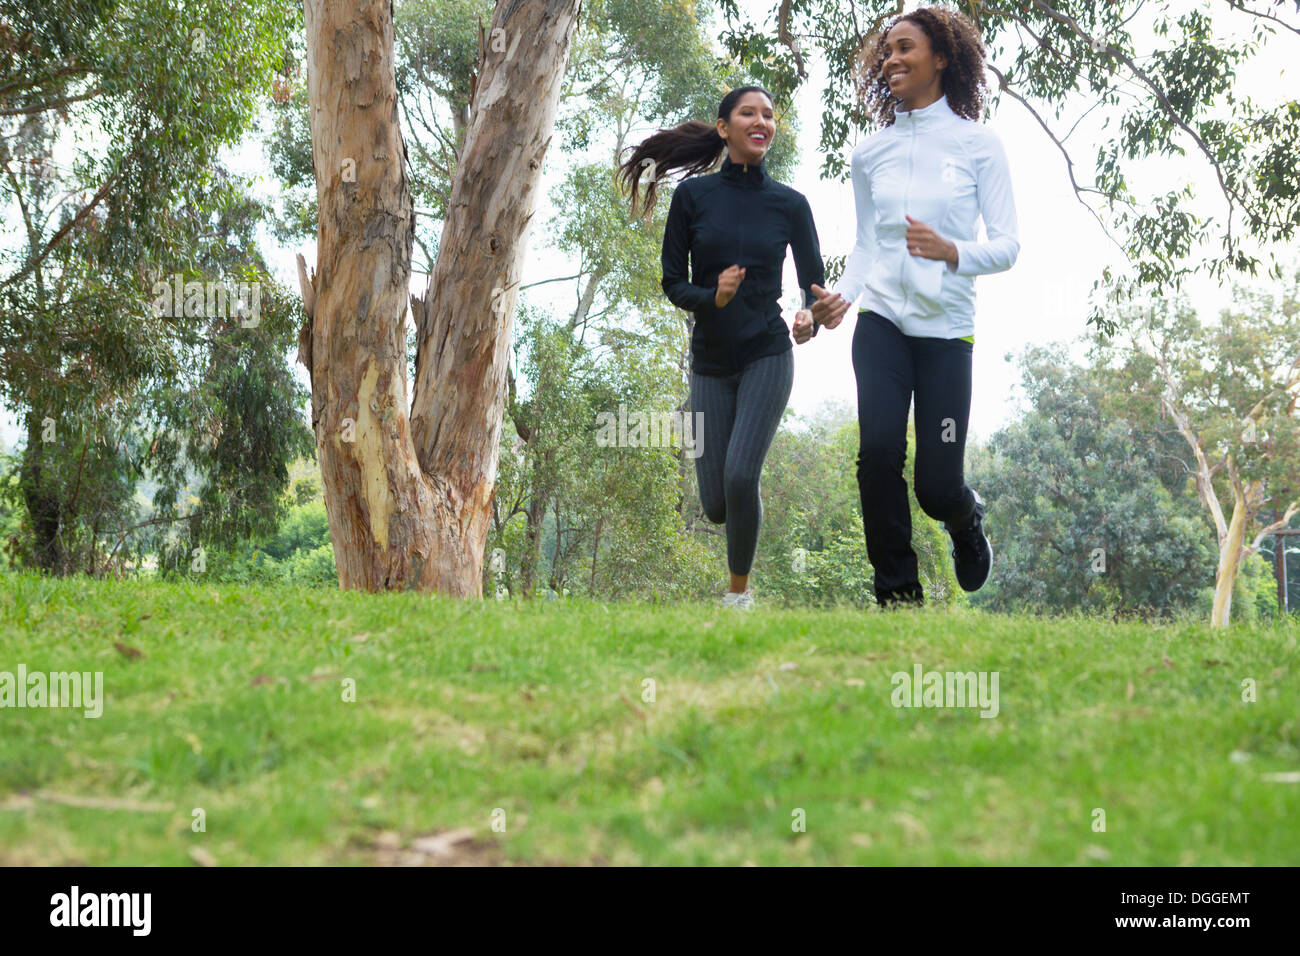 Young and mid adult woman jogging together - Stock Image